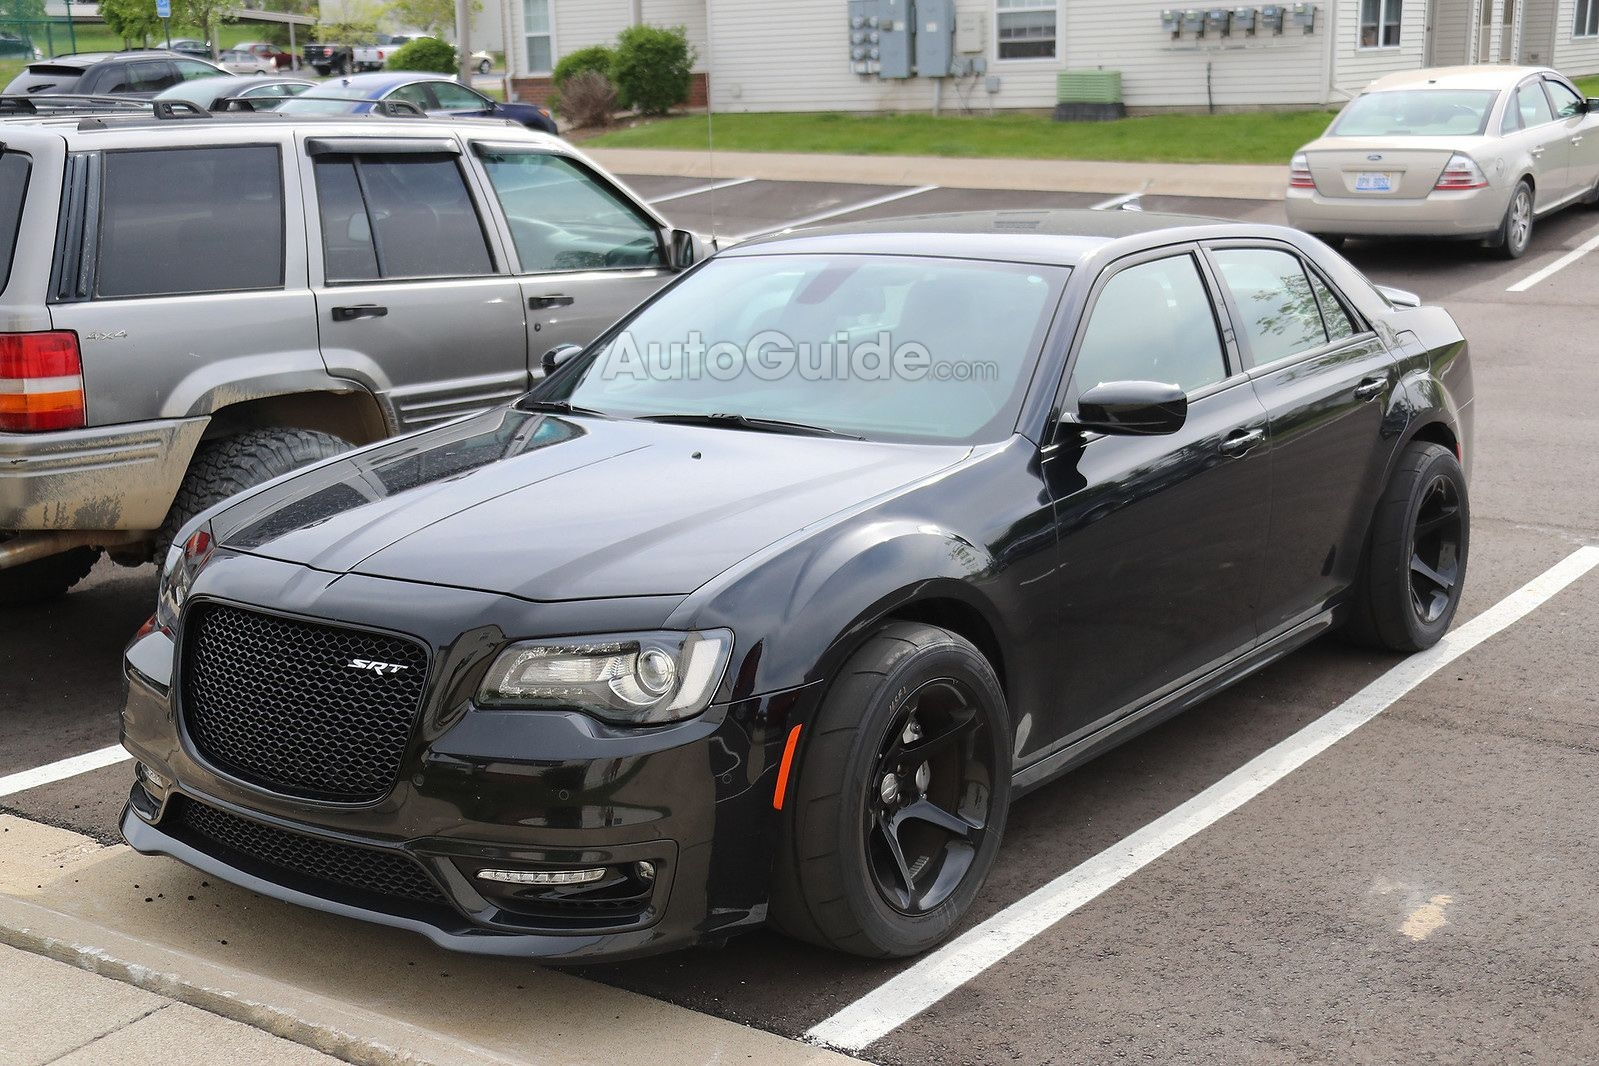 42 The Best 2020 Chrysler 300 Srt8 Price Design and Review